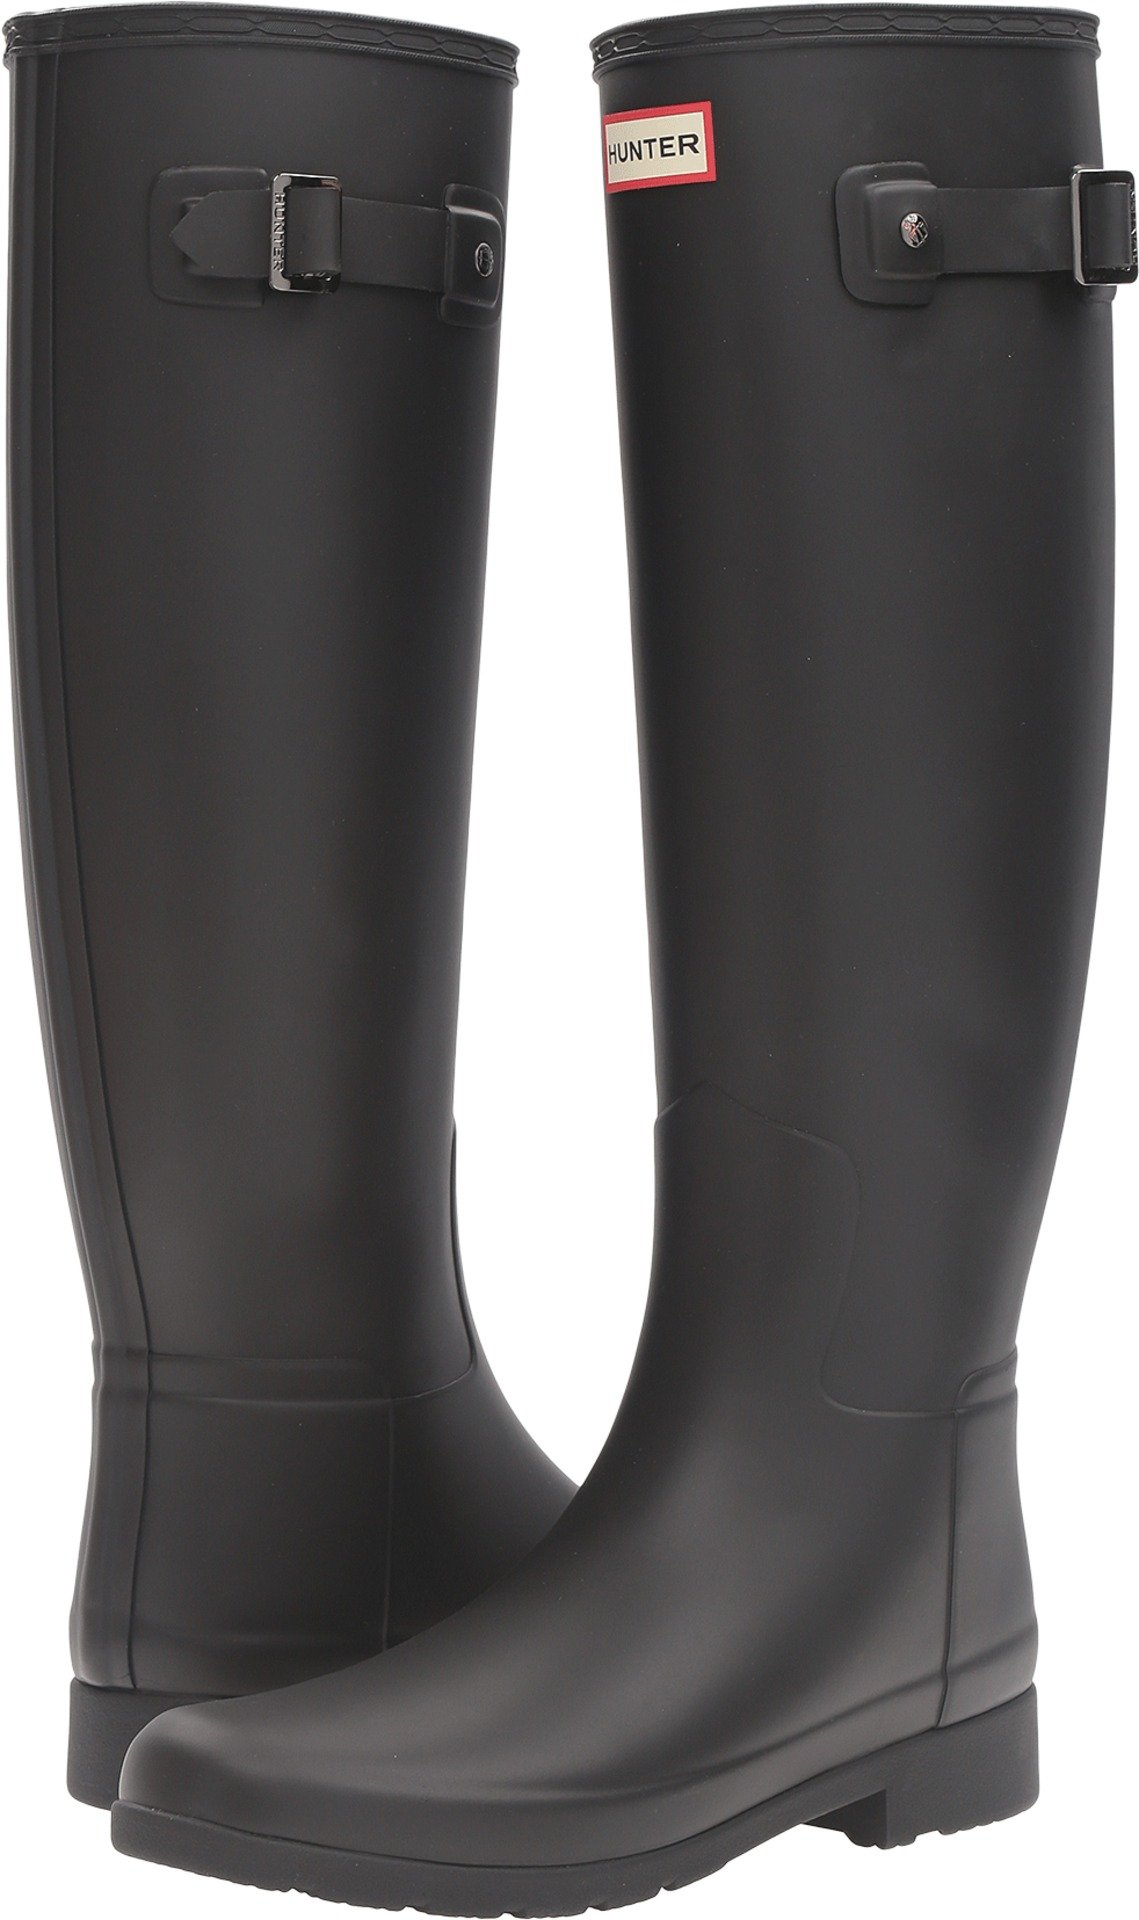 Hunter Women's Original Refined Rain Boots Black 8 M US by Hunter